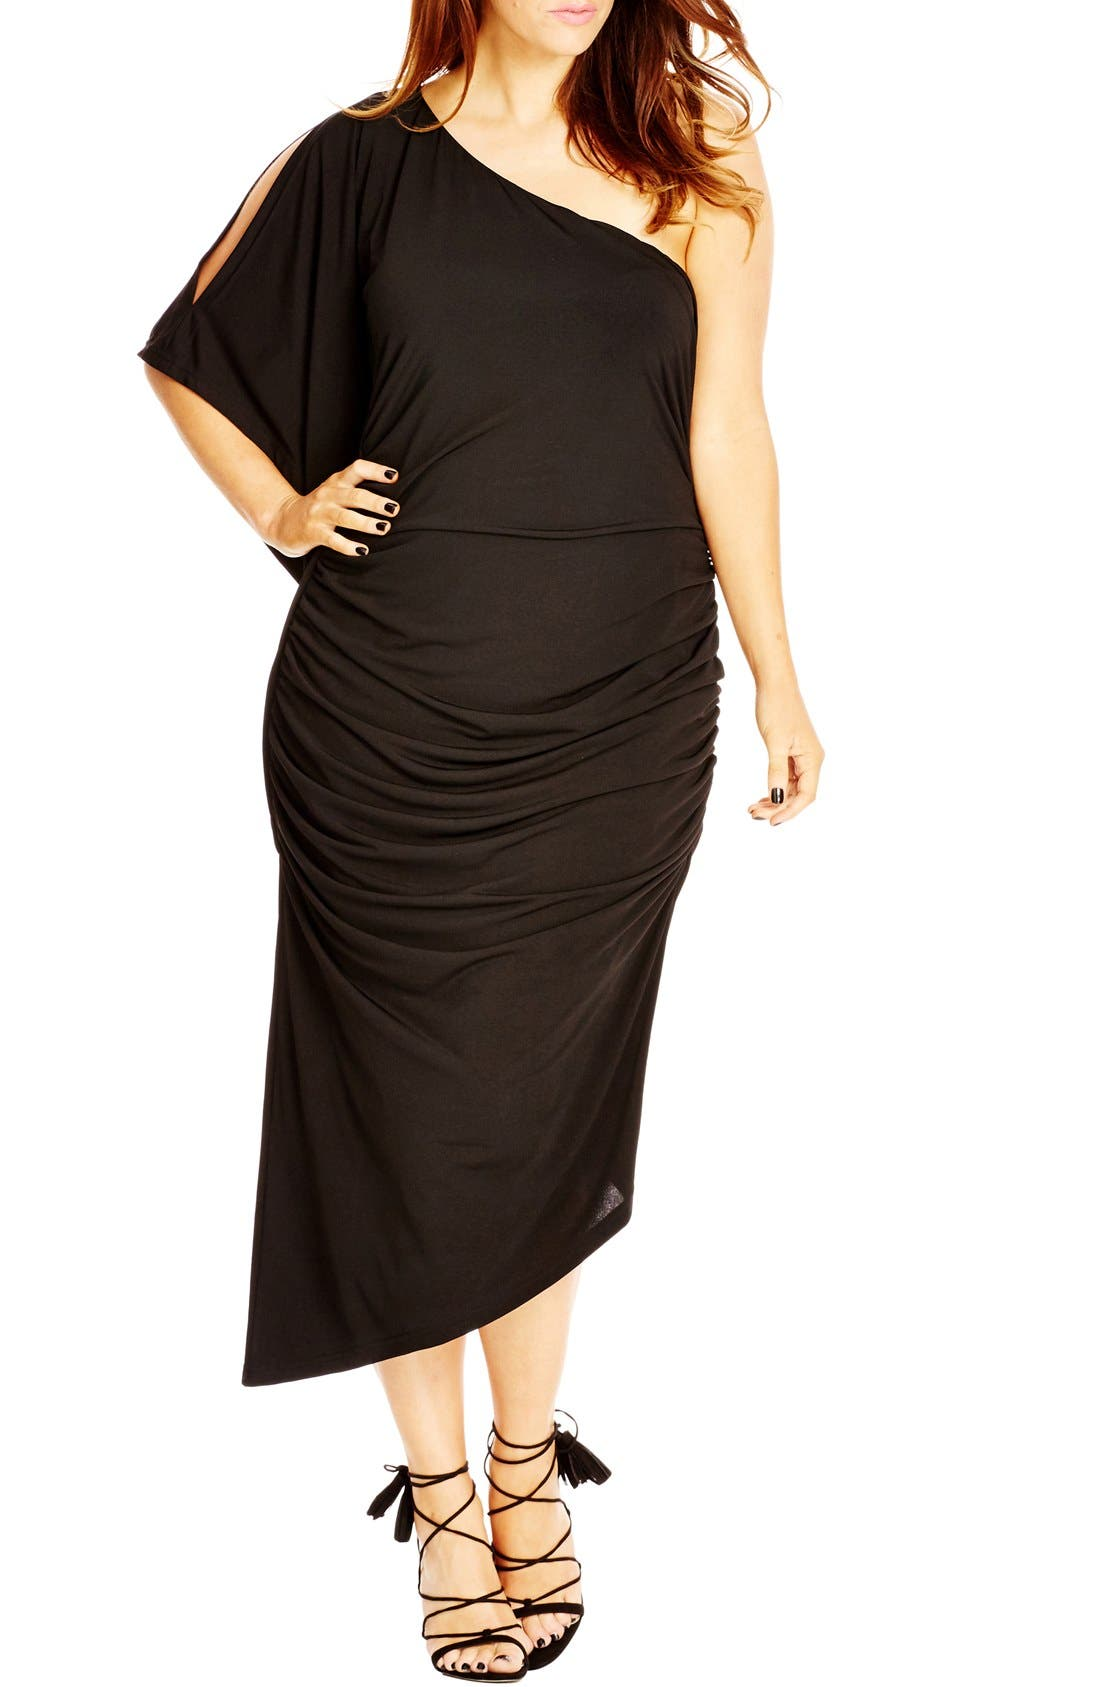 CITY CHIC 'Black Drama' One-Shoulder Midi Dress